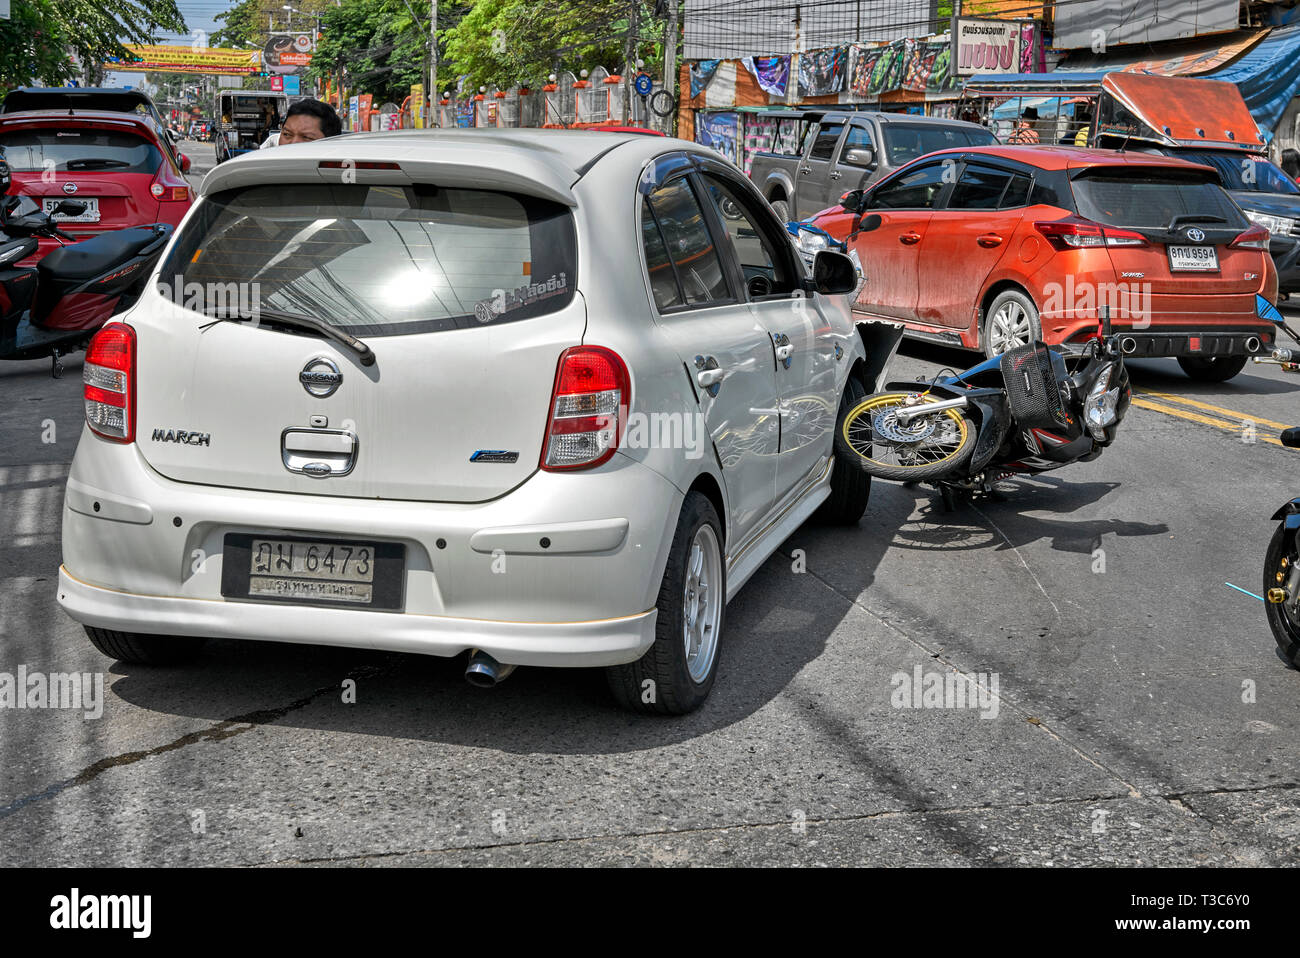 Road Accident Stock Photos & Road Accident Stock Images - Alamy